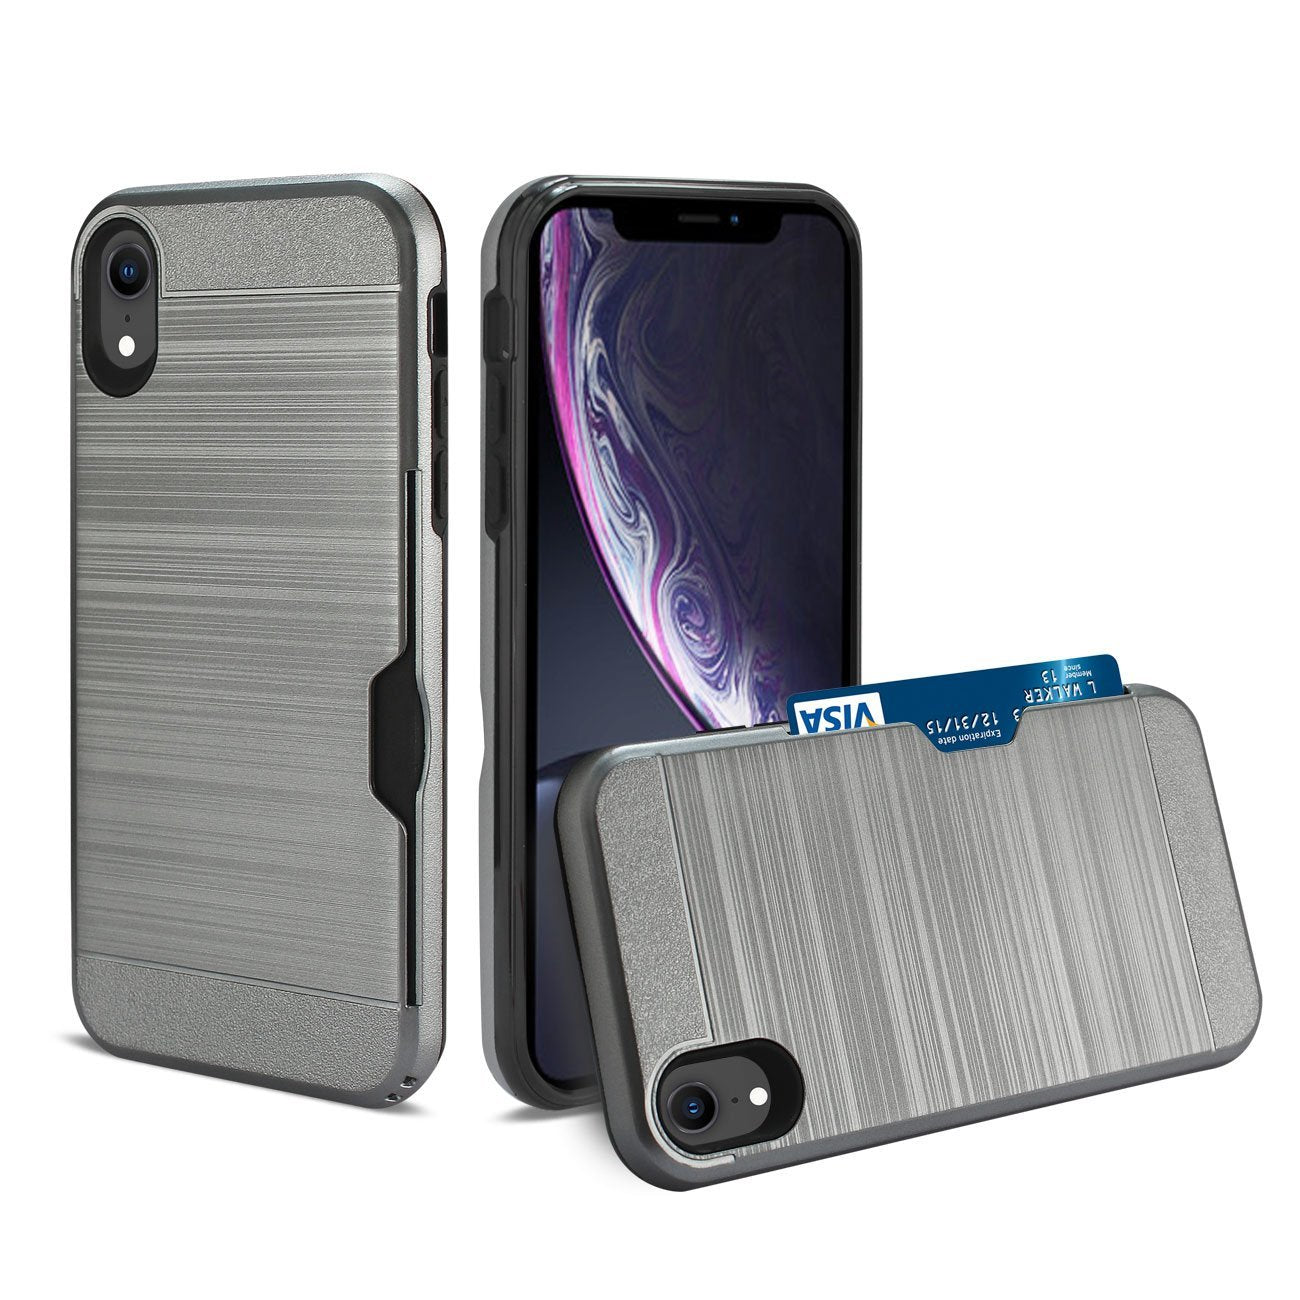 Reiko iPhone XR Slim Armor Hybrid Case With Card Holder In Gray